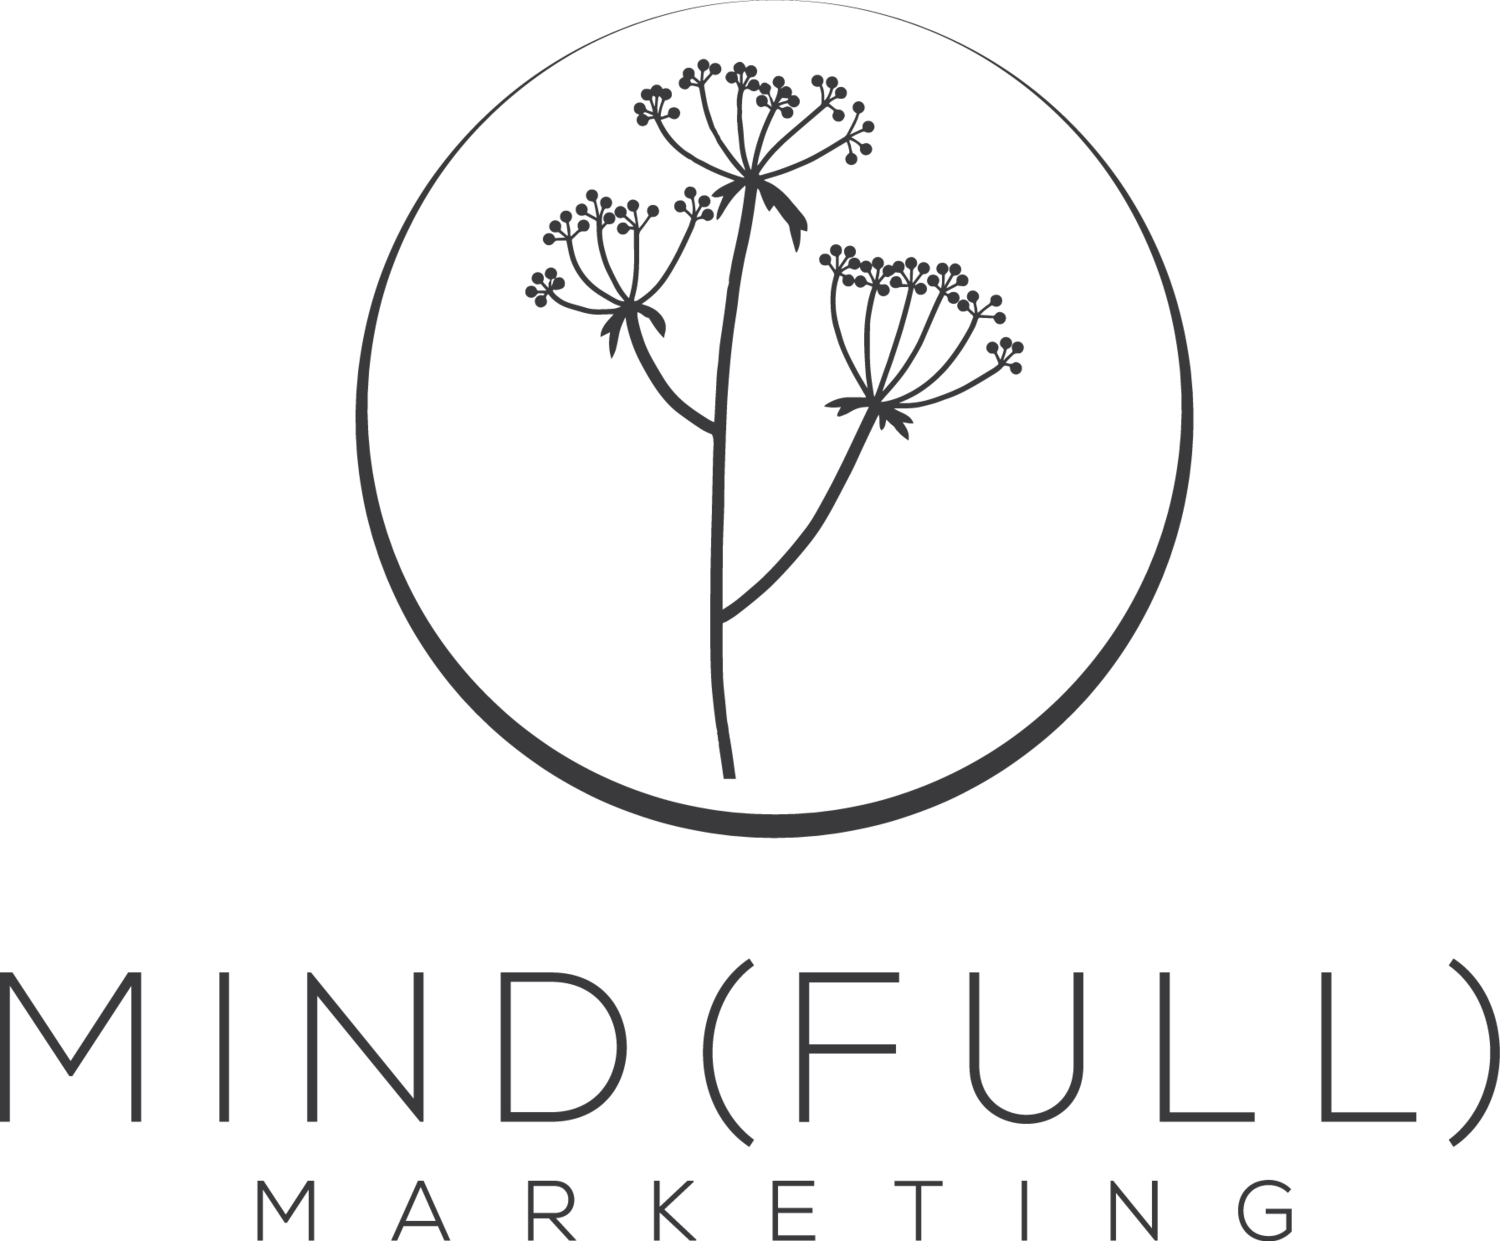 mindfull marketing